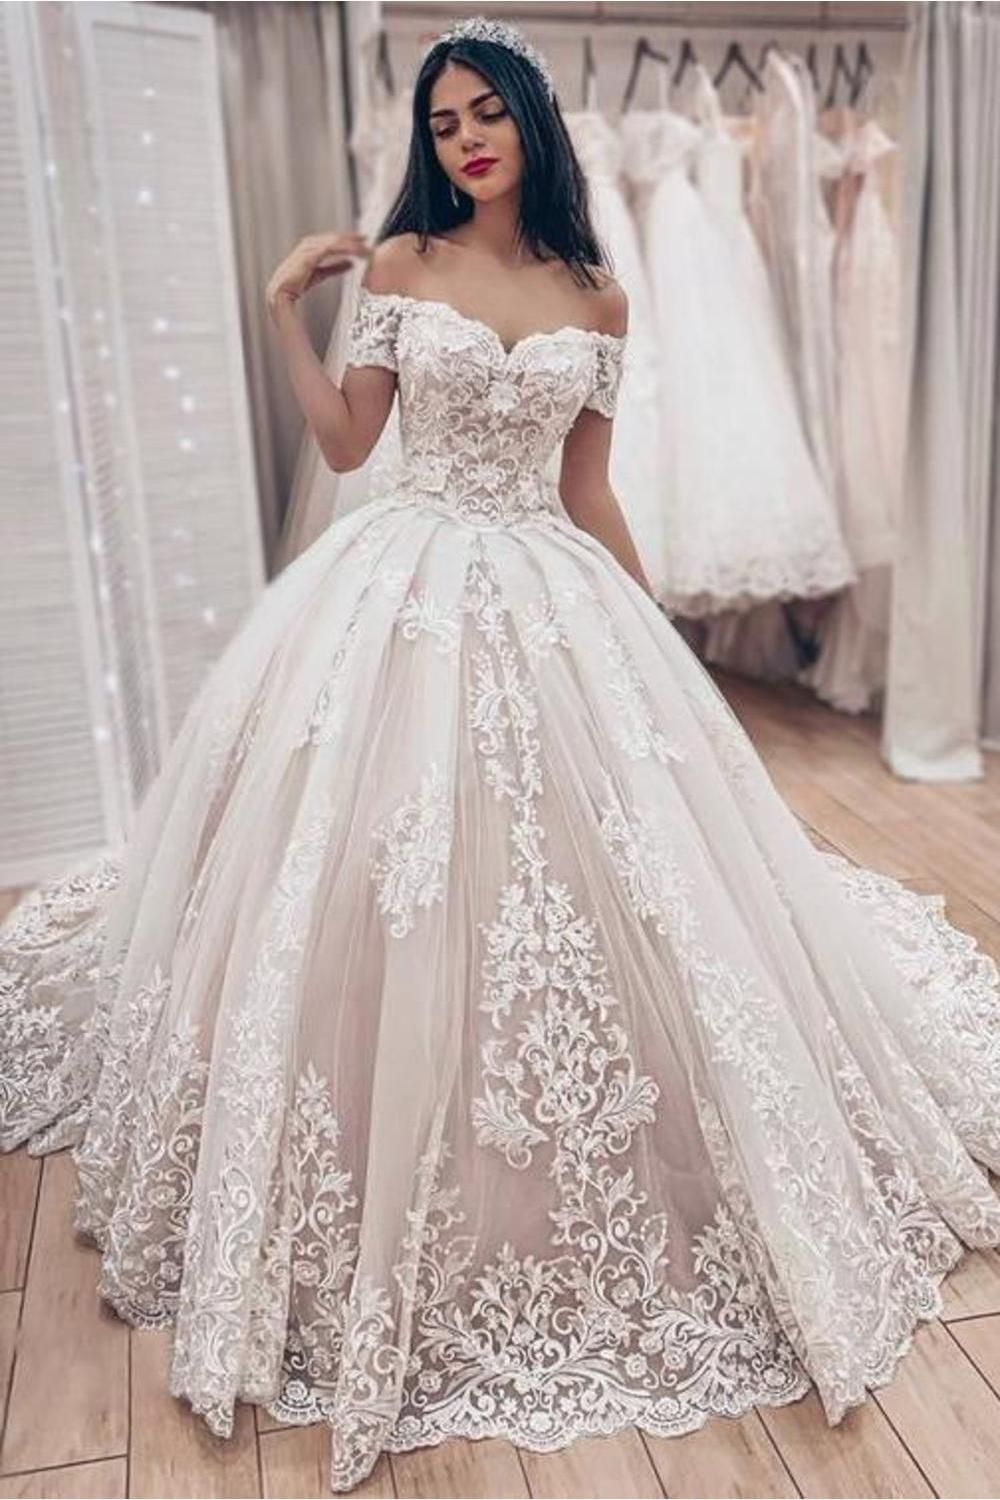 Ball Gown Off The Shoulder Wedding Dress With Lace Appliques, Gorgeous Bridal Dress SAPC62493J #tulleballgown